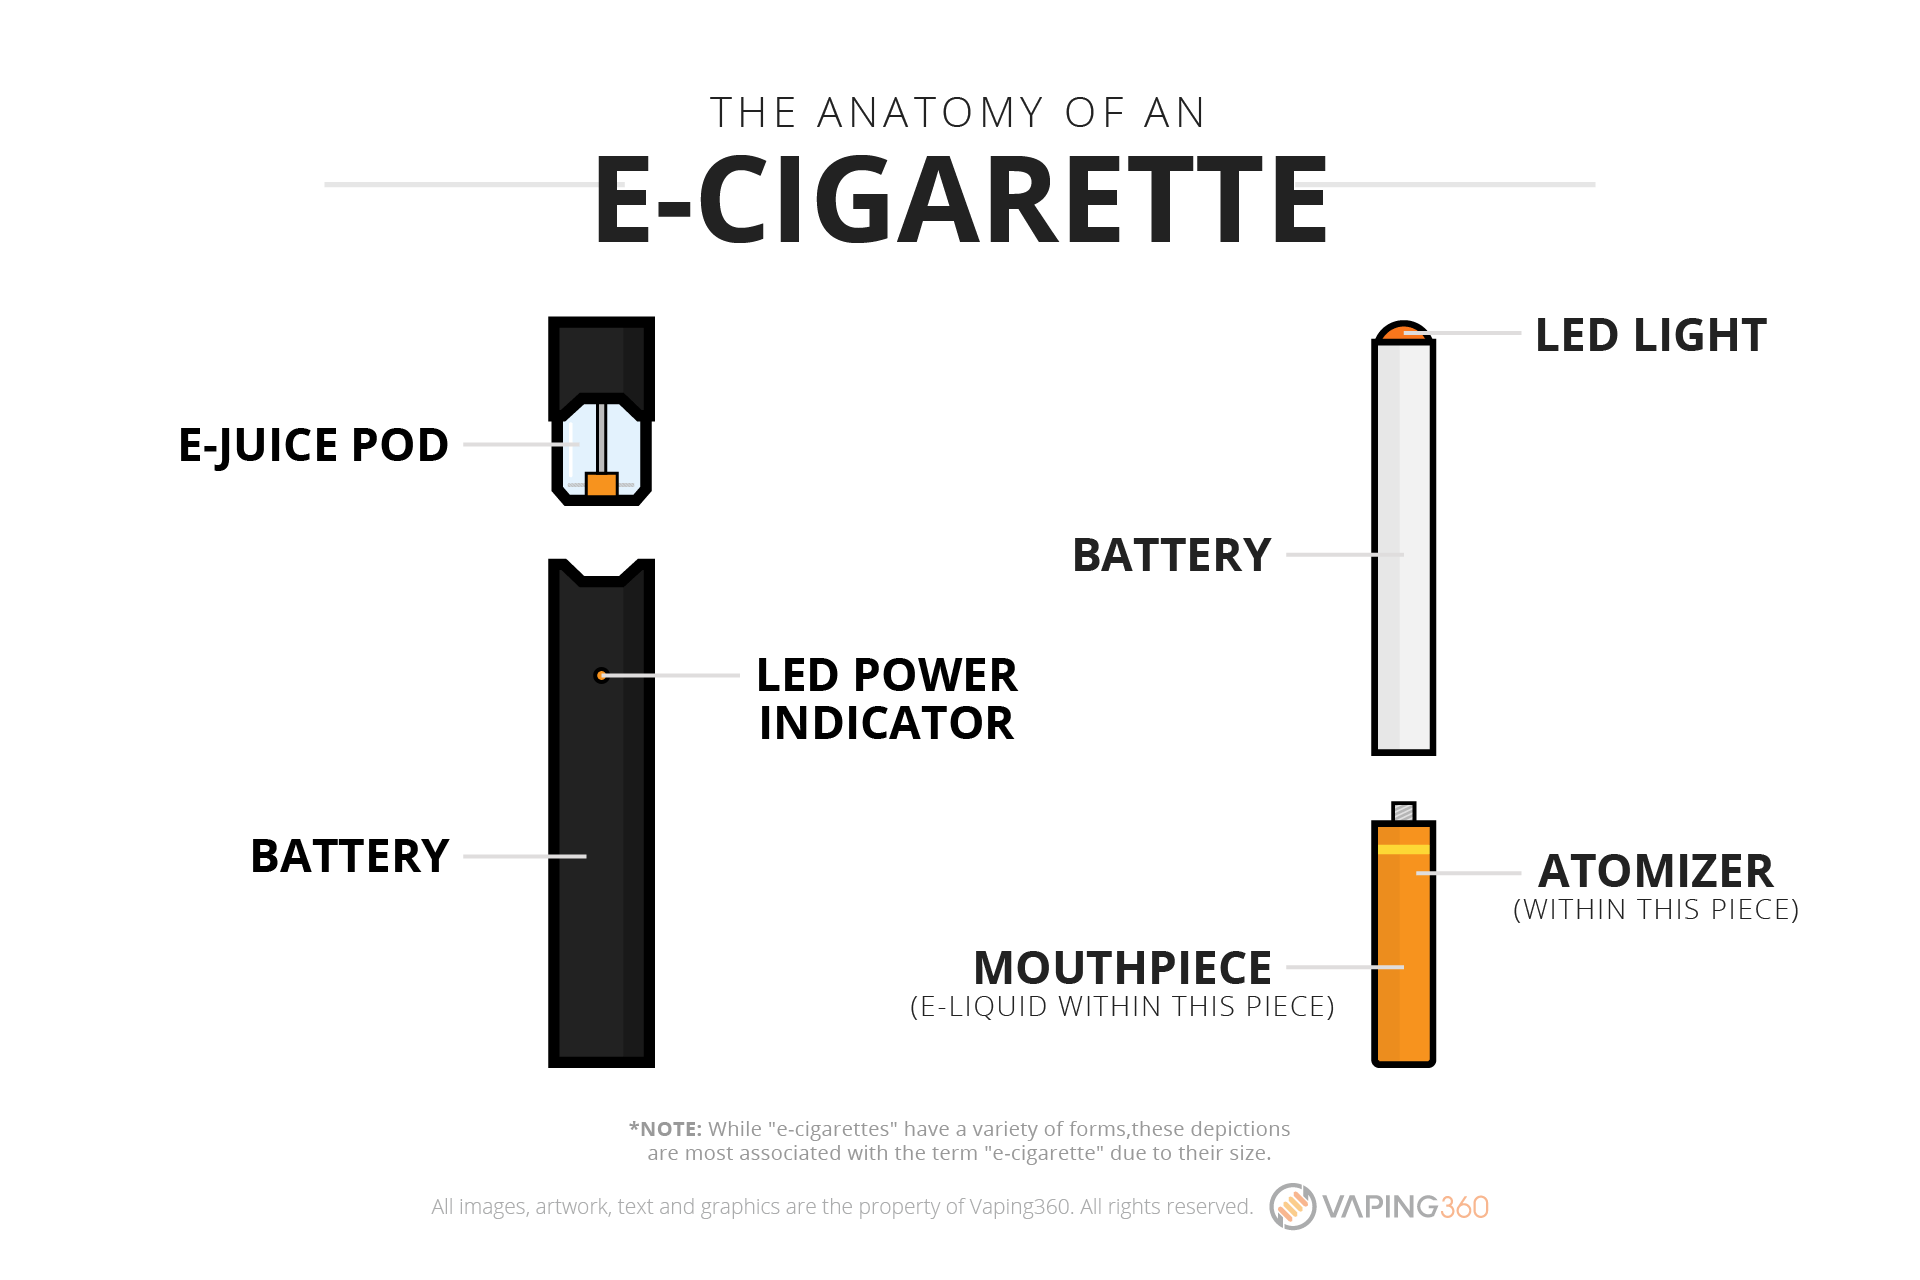 the-anatomy-of-an-e-cigarette